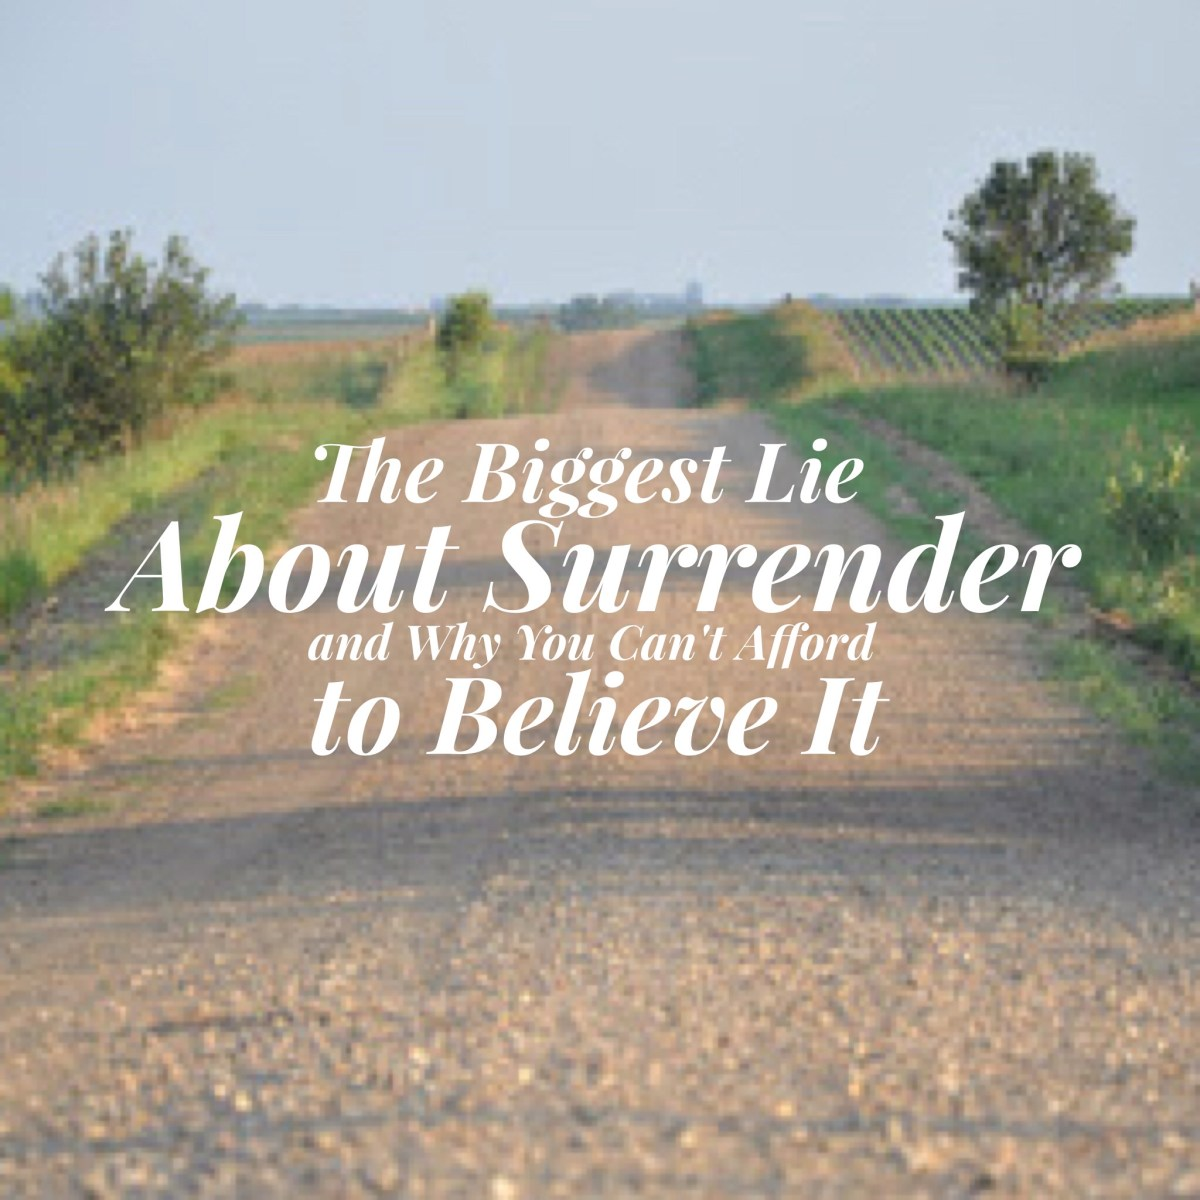 The Biggest Lie About Surrender – and Why You Can't Afford to Believe It